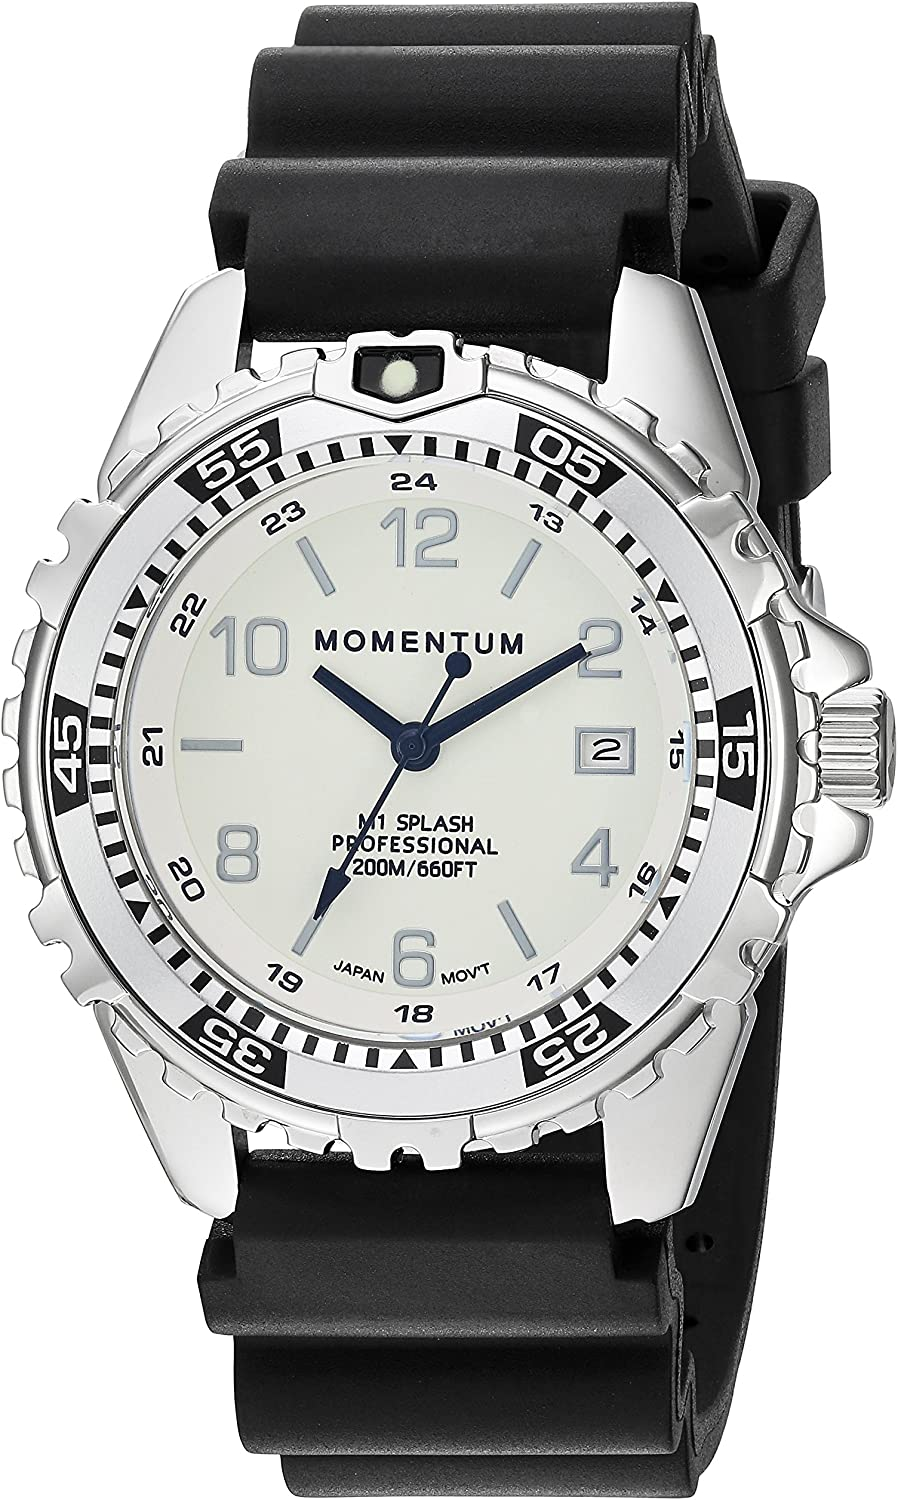 Free shipping anywhere in the nation Momentum's Unisex Now on sale M1 Splash Watch Water 200m ft 660 Resistan